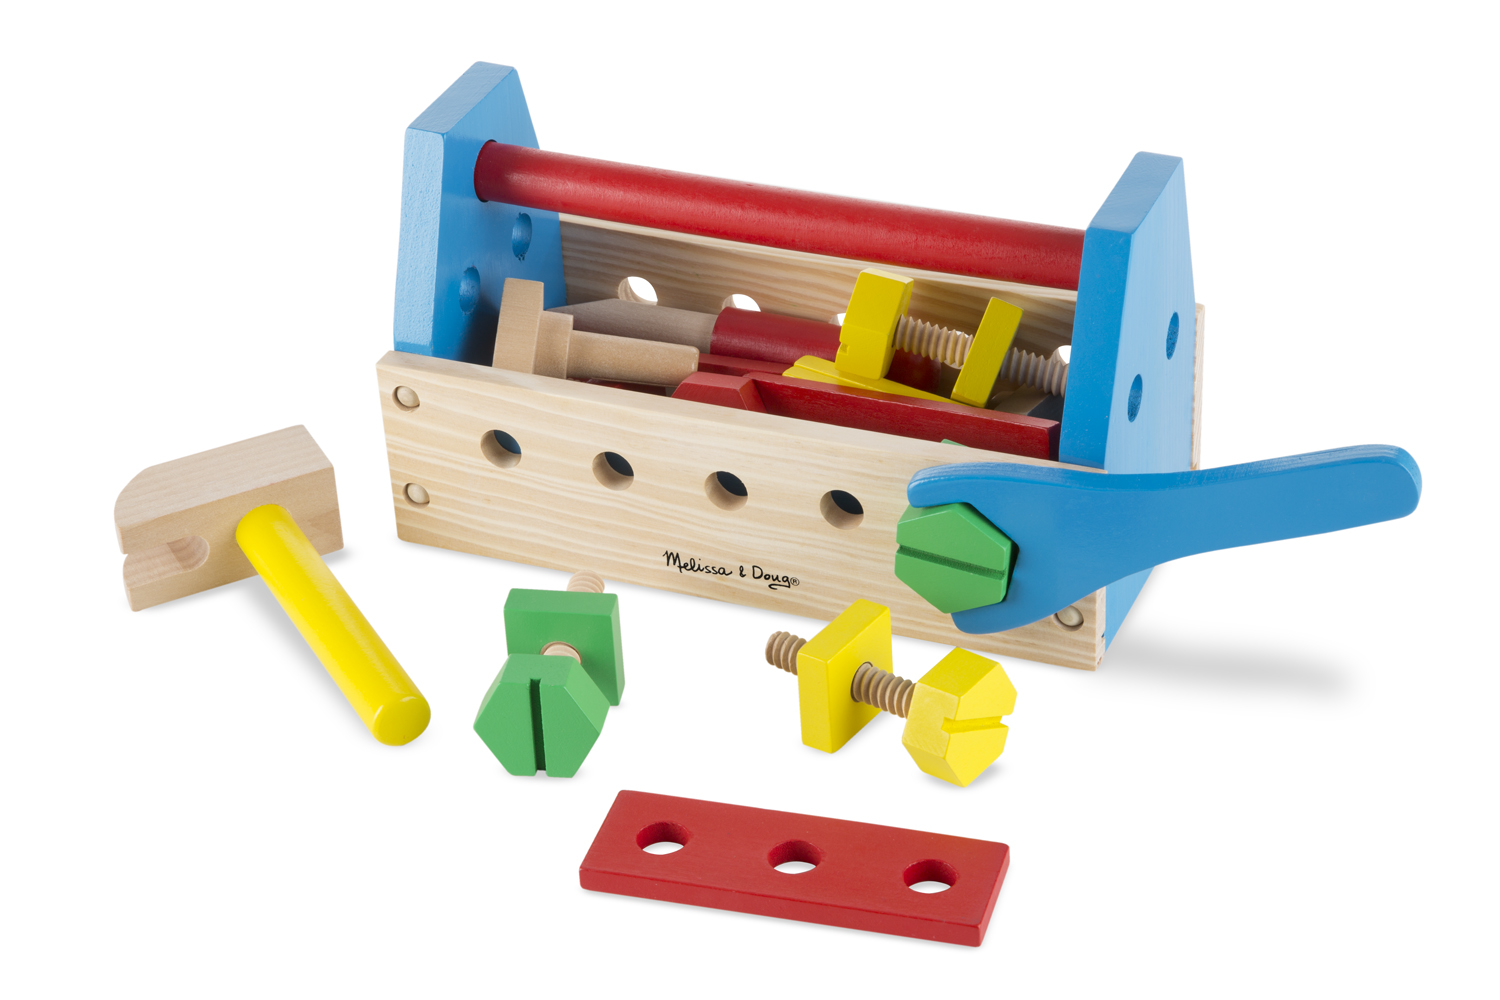 Image for Melissa & Doug - Take-Along Tool Kit Wooden Toy from Circuit City